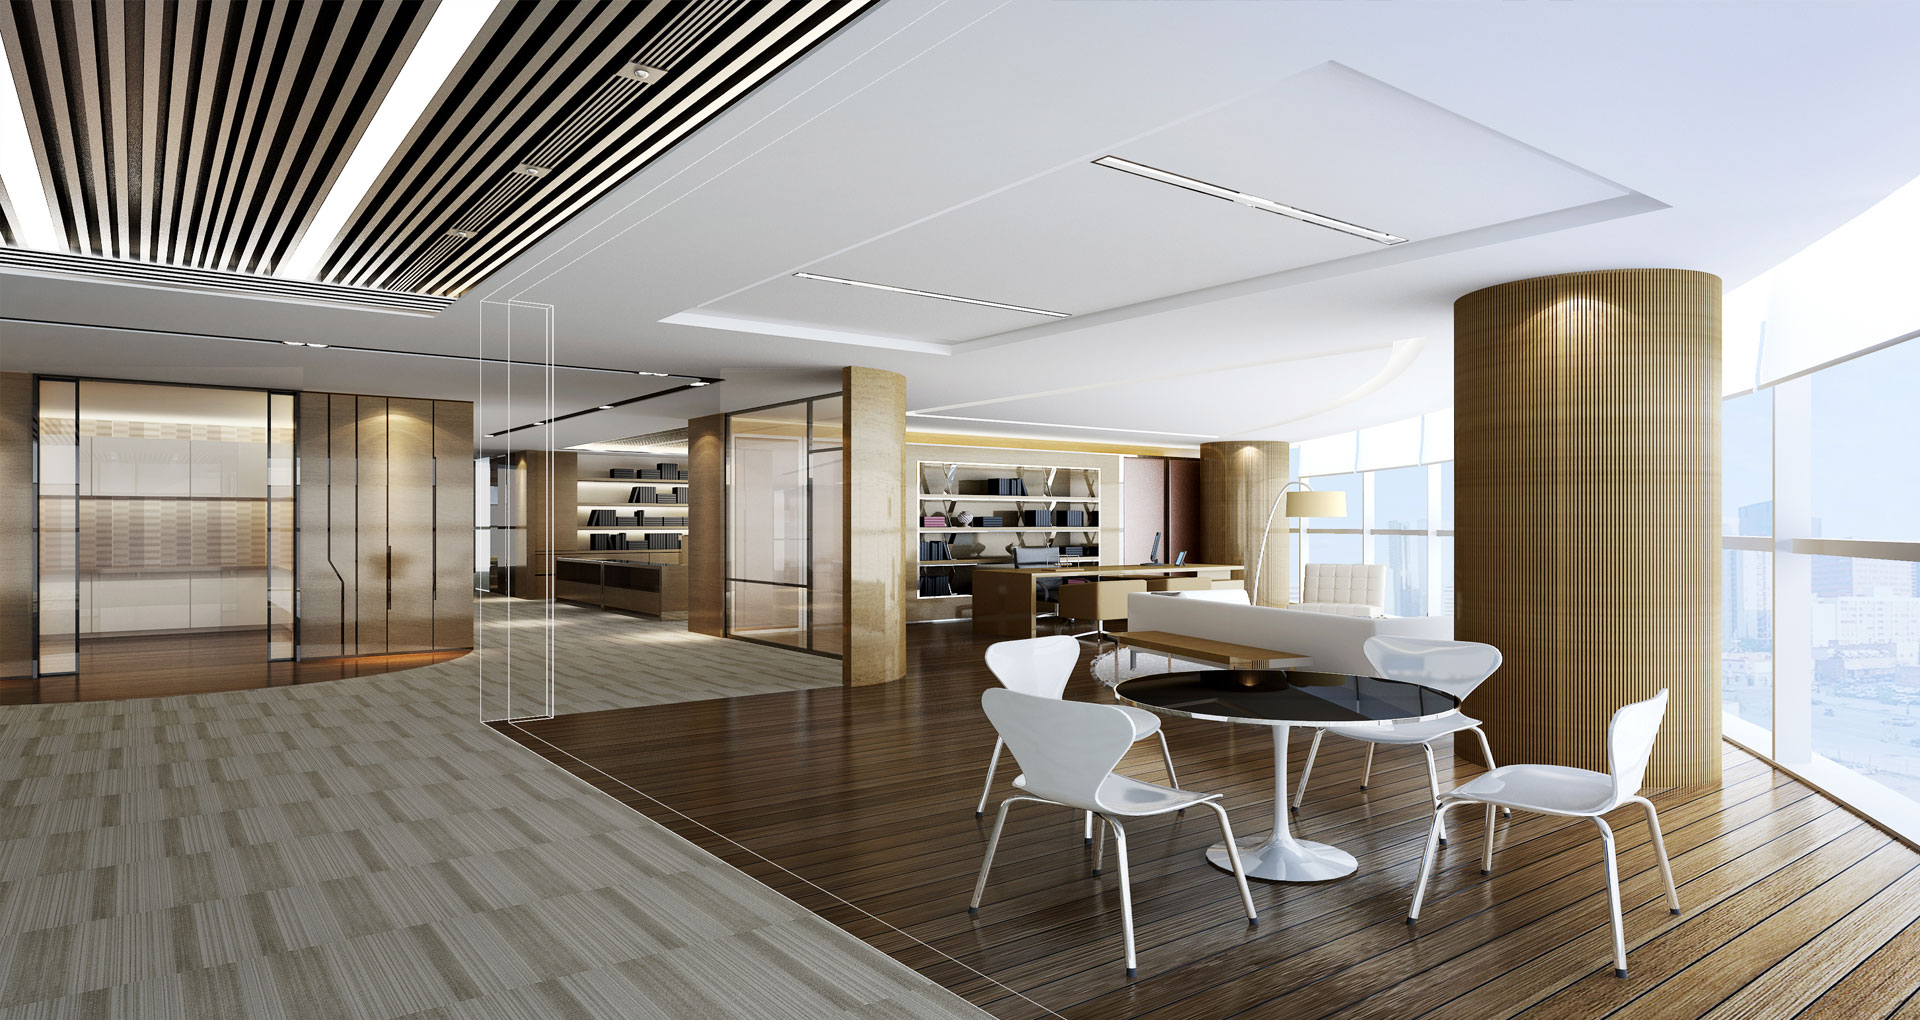 Office interior design inpro concepts design for Modern interior design for office